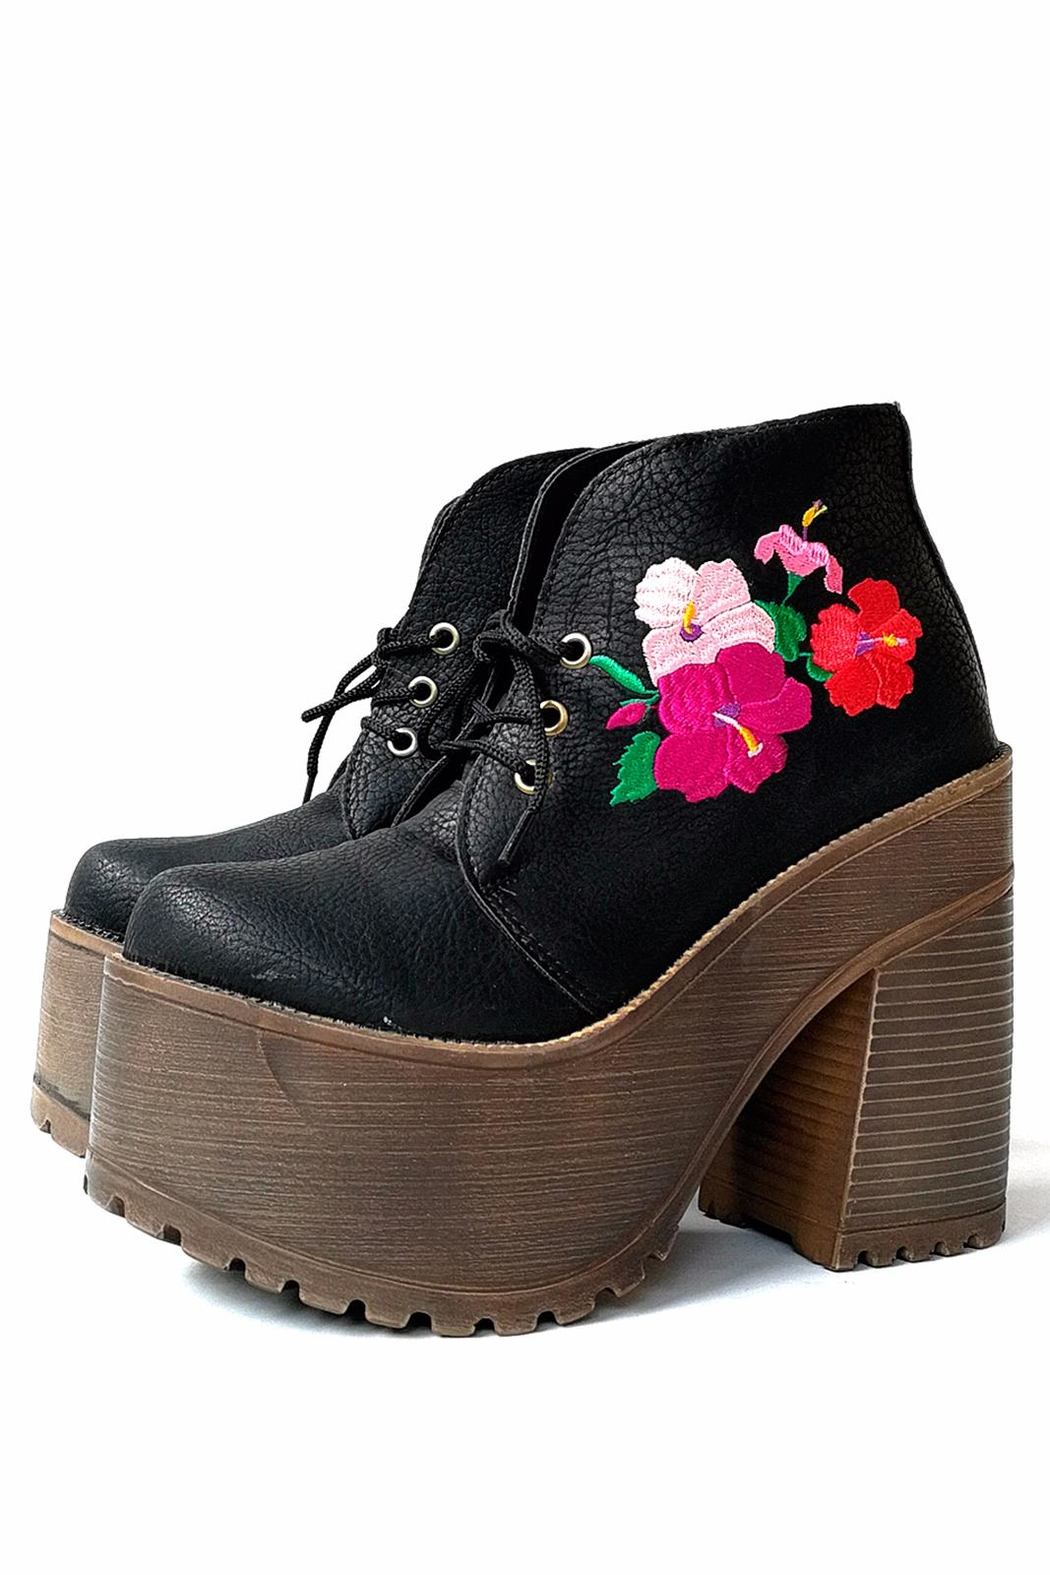 MIYE COLLAZZO Black Embroidered Bootie - Front Full Image